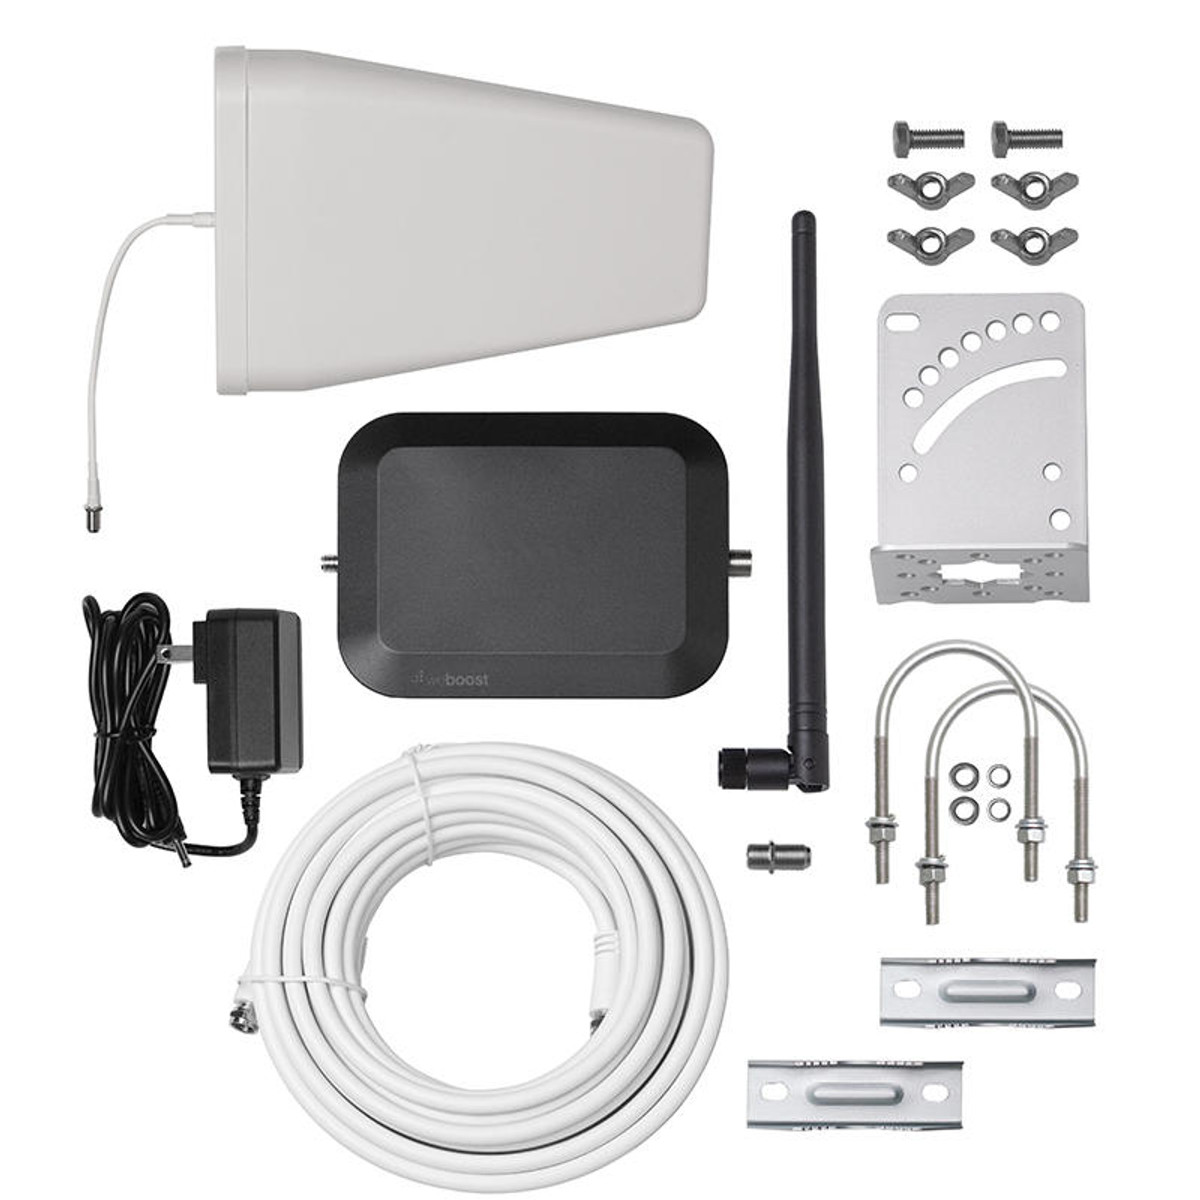 weBoost weBoost Home Studio Cell Phone Signal Booster Kit or 470166